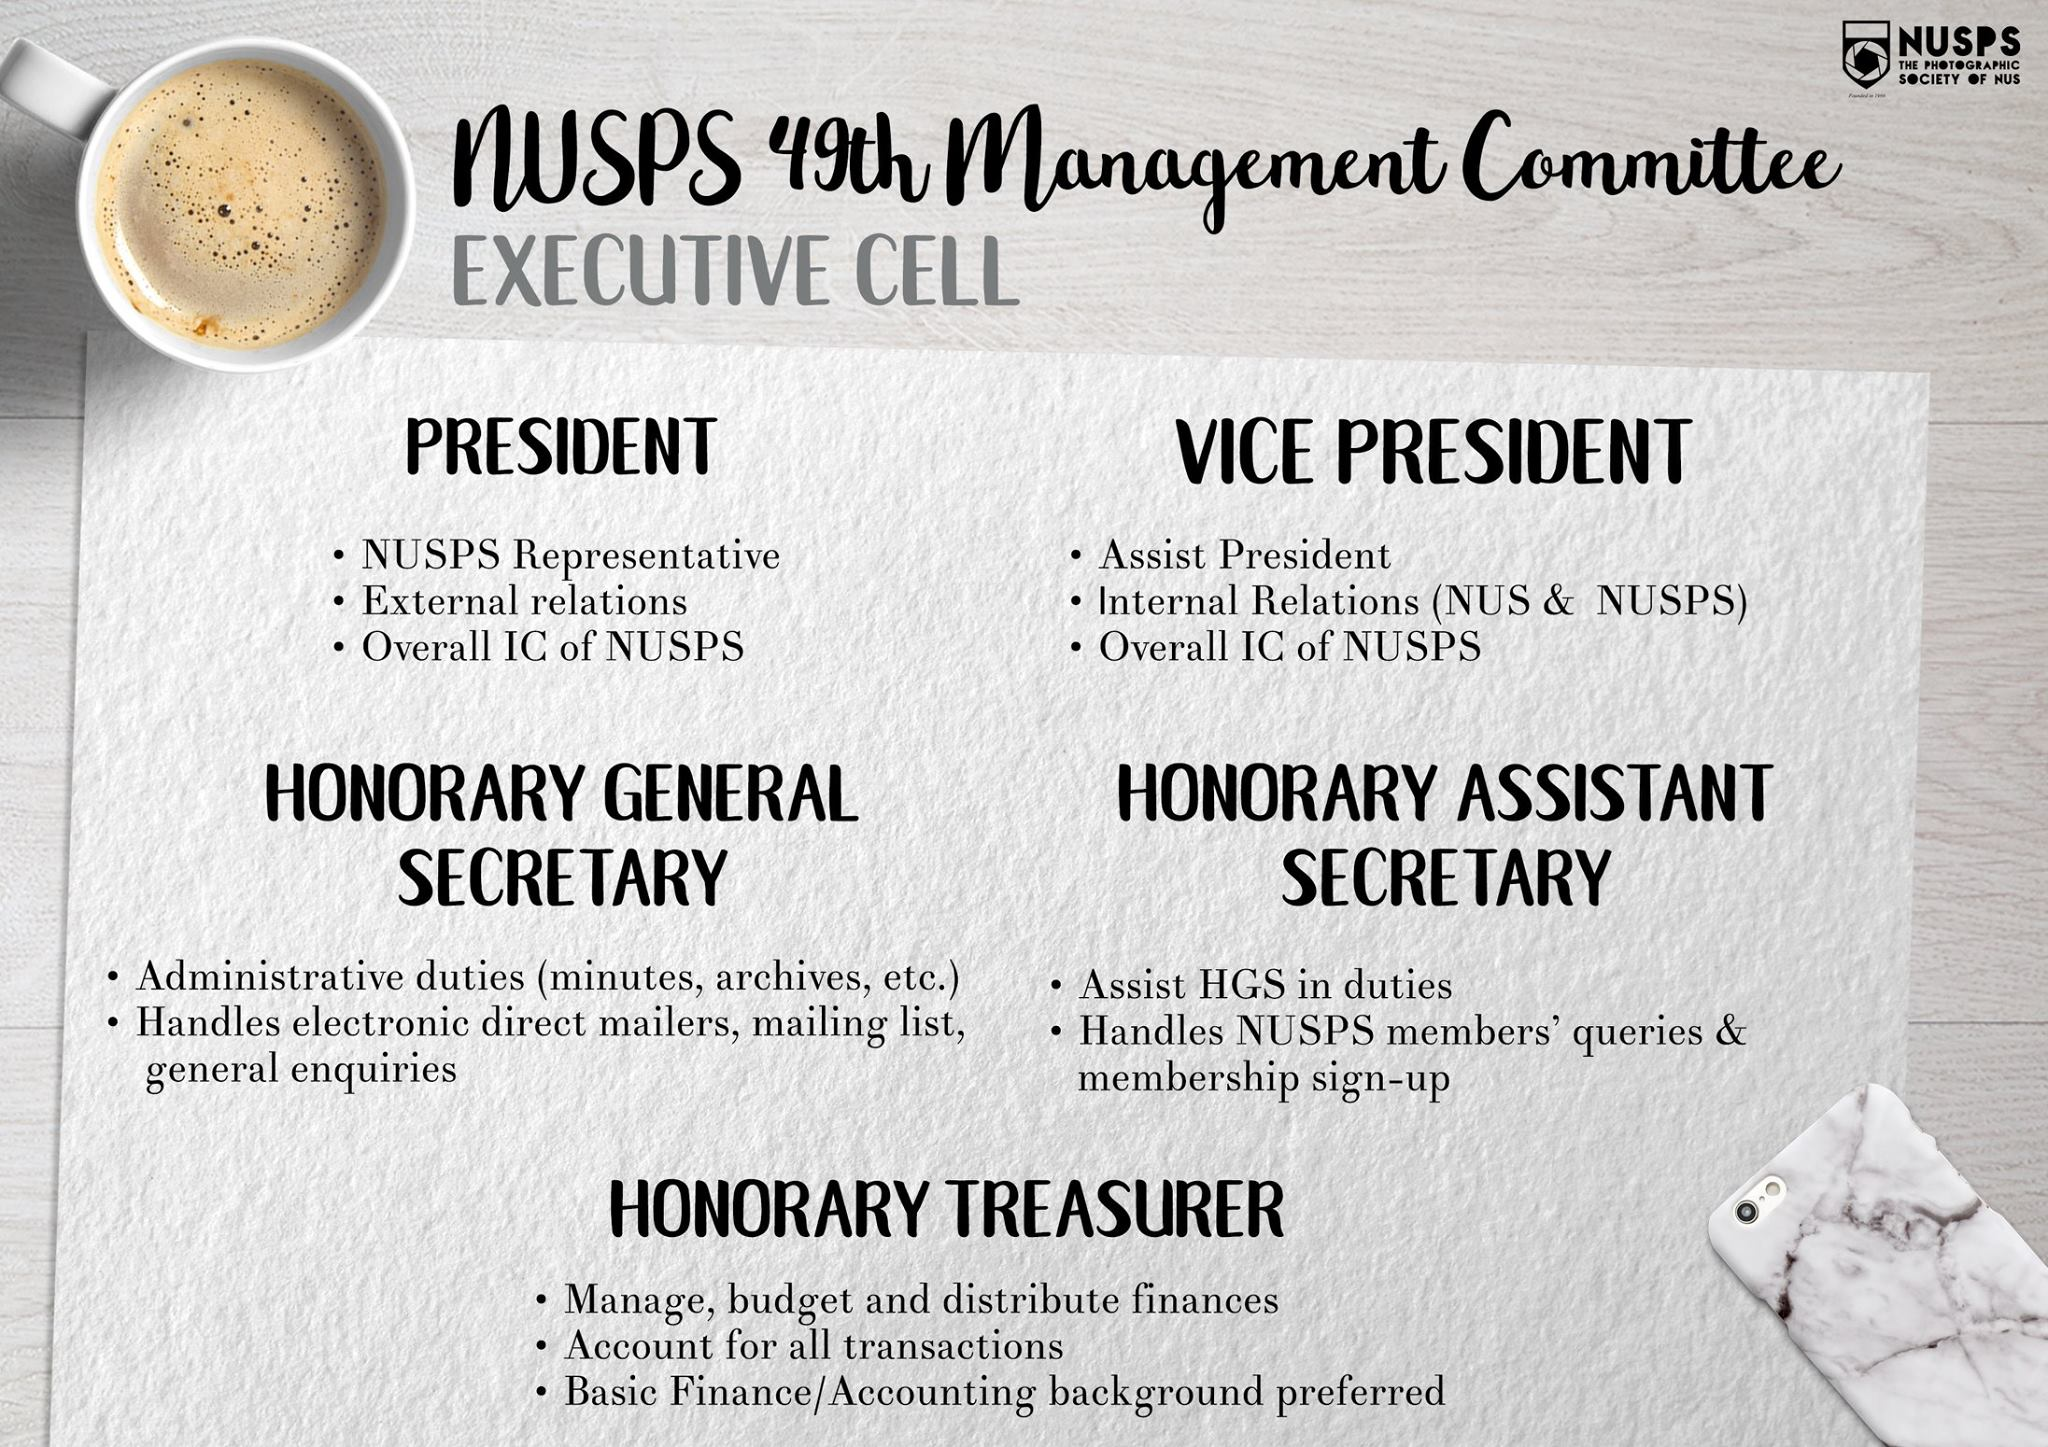 Recruitment for the 49th Management Committee!